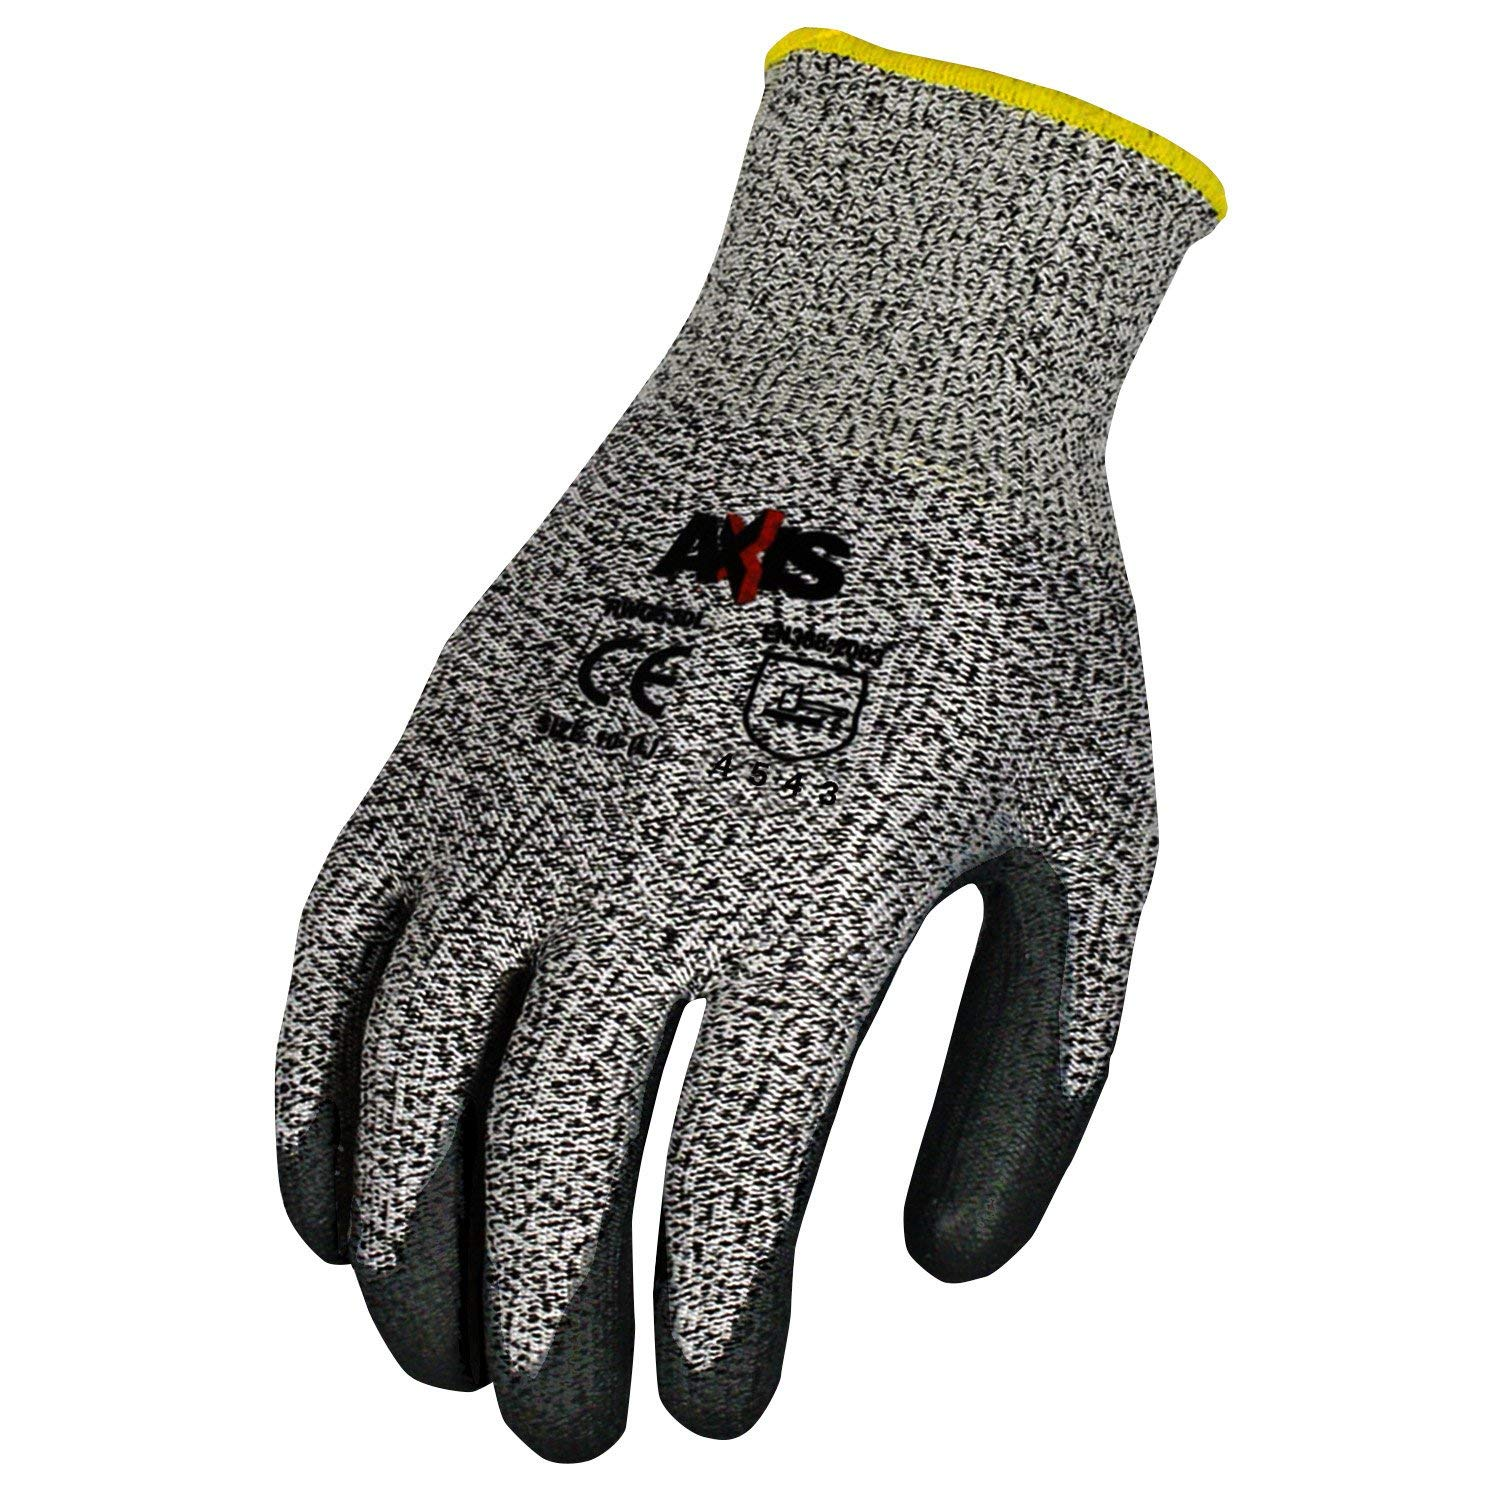 Radians RWG555L Axis Cut Protection Level 4 Work Glove (12 per Pack), Large